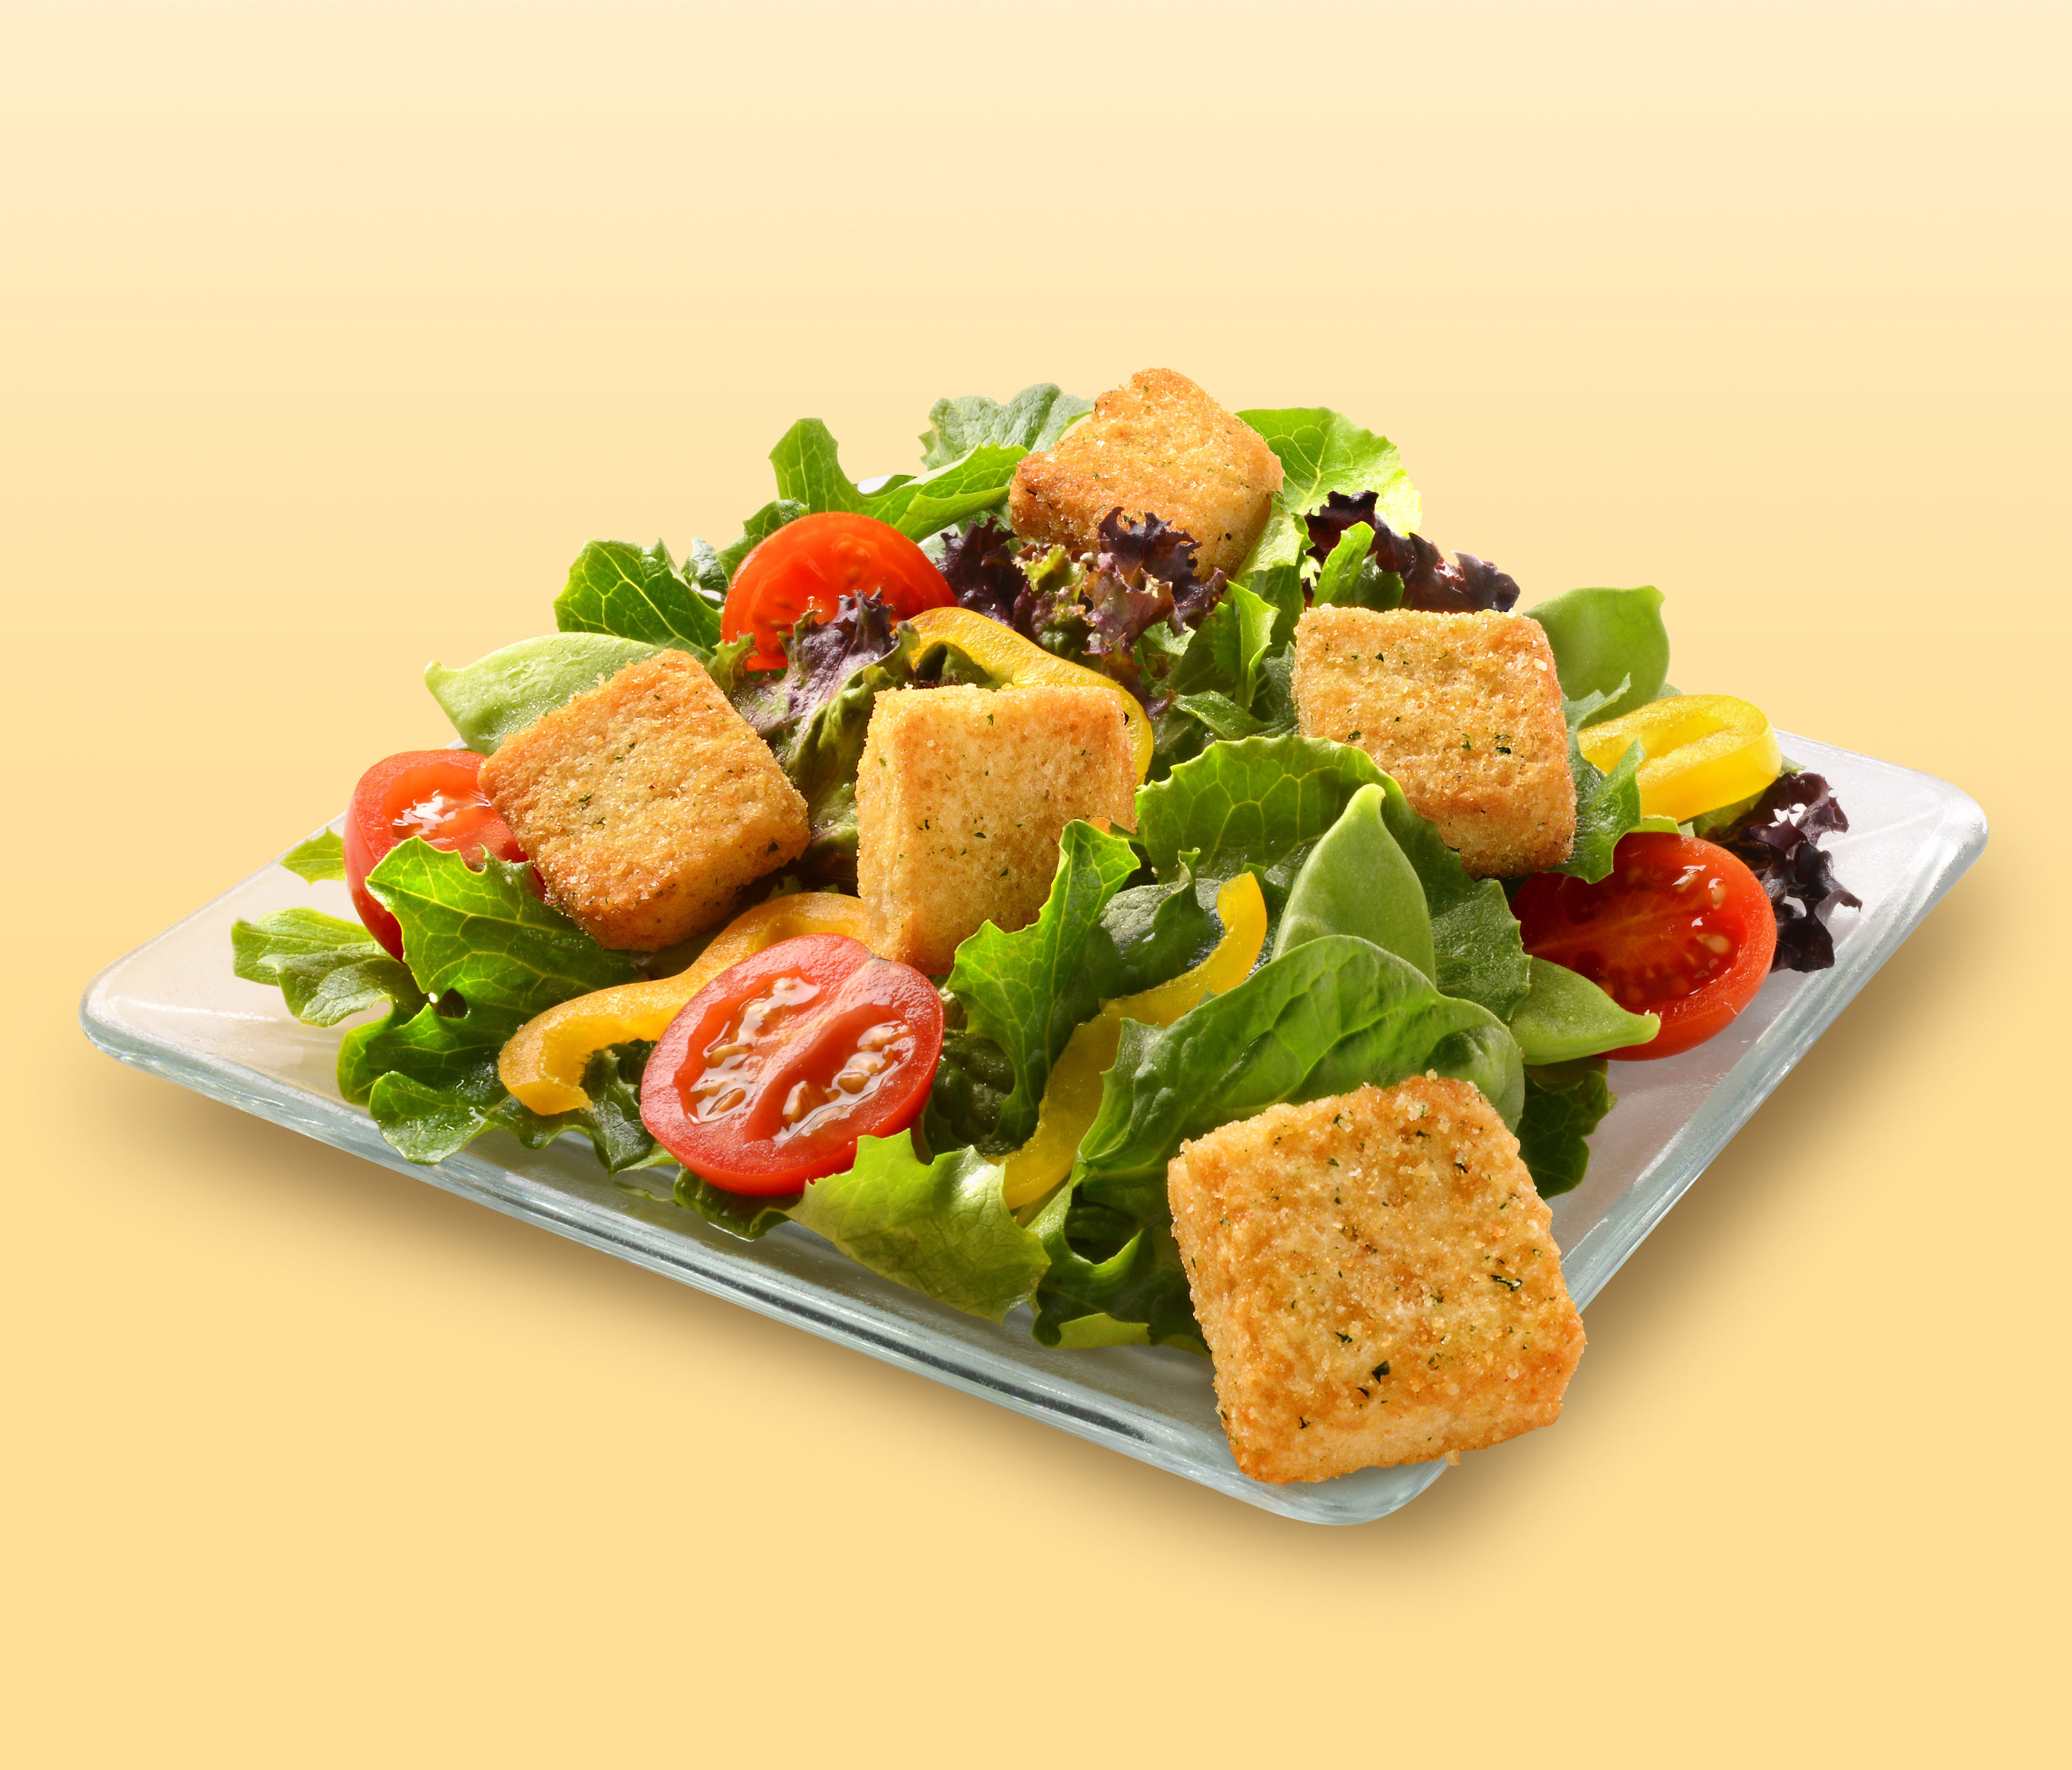 salad-tomato-peppers-croutons